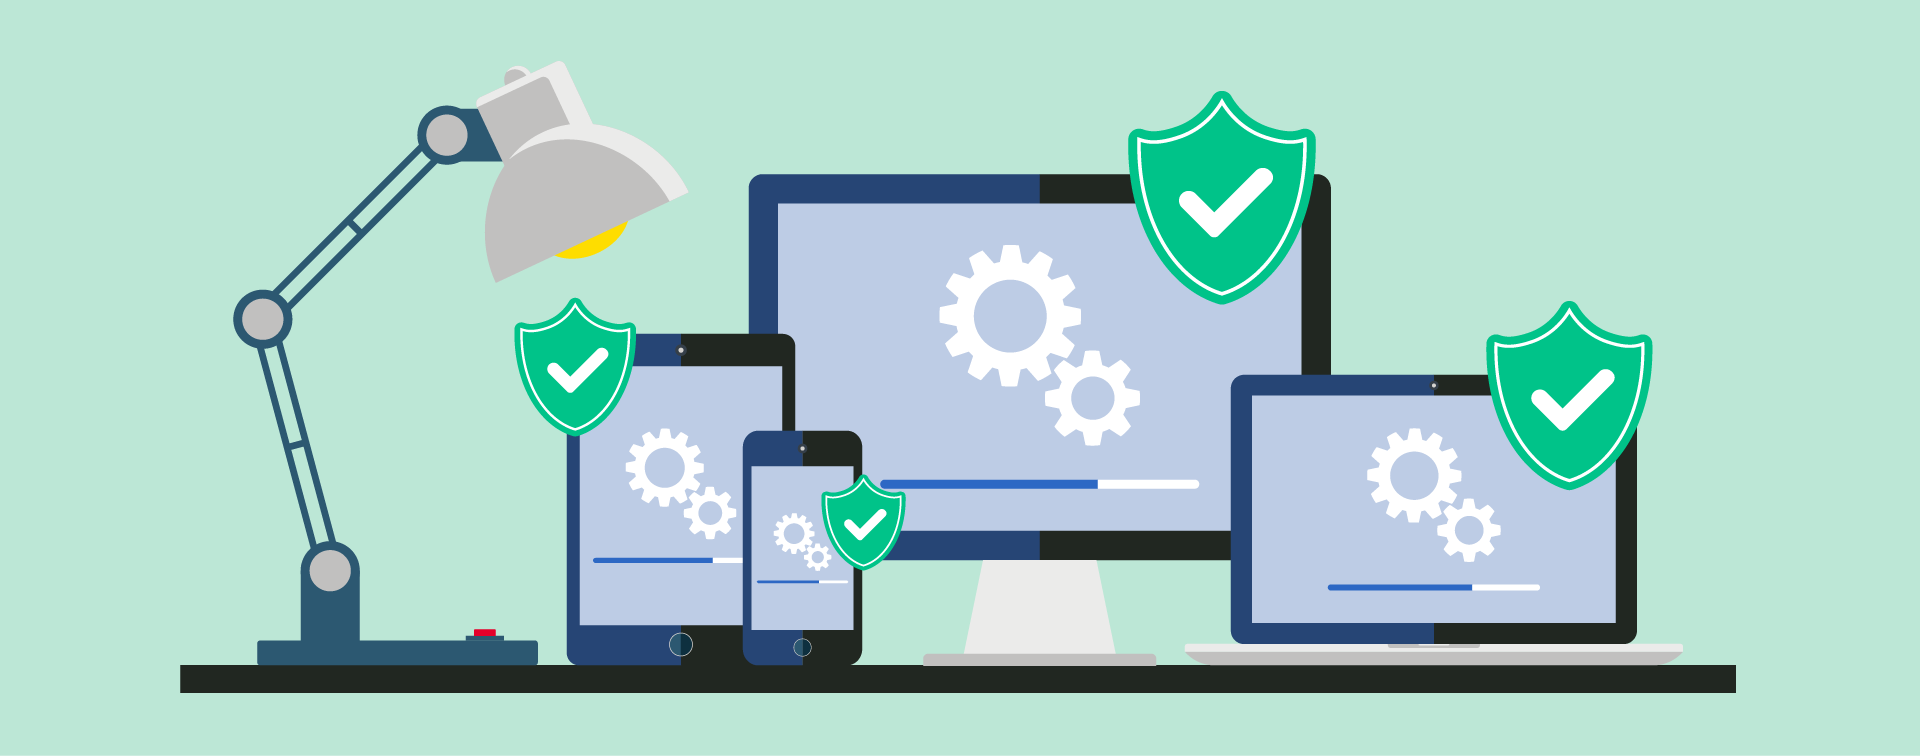 Desktop, mobile and tablet devices displaying renewed SSL certificate shields